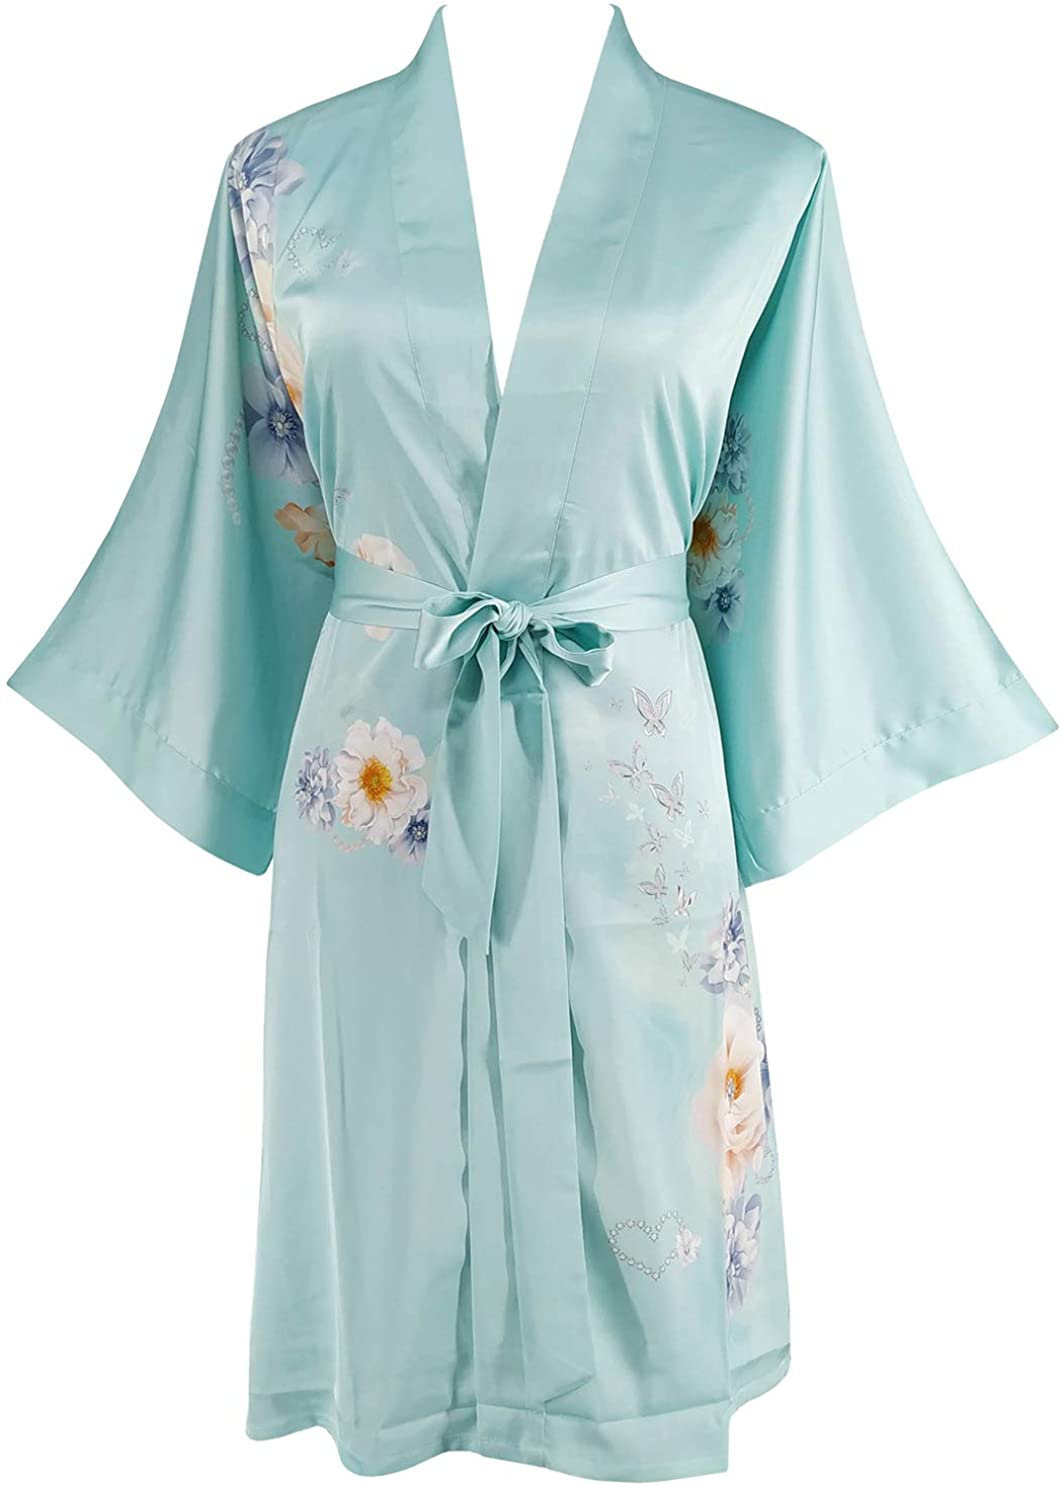 Ledamon Women's Kimono Short Robe - Classic Floral Bathrobe Nightgown